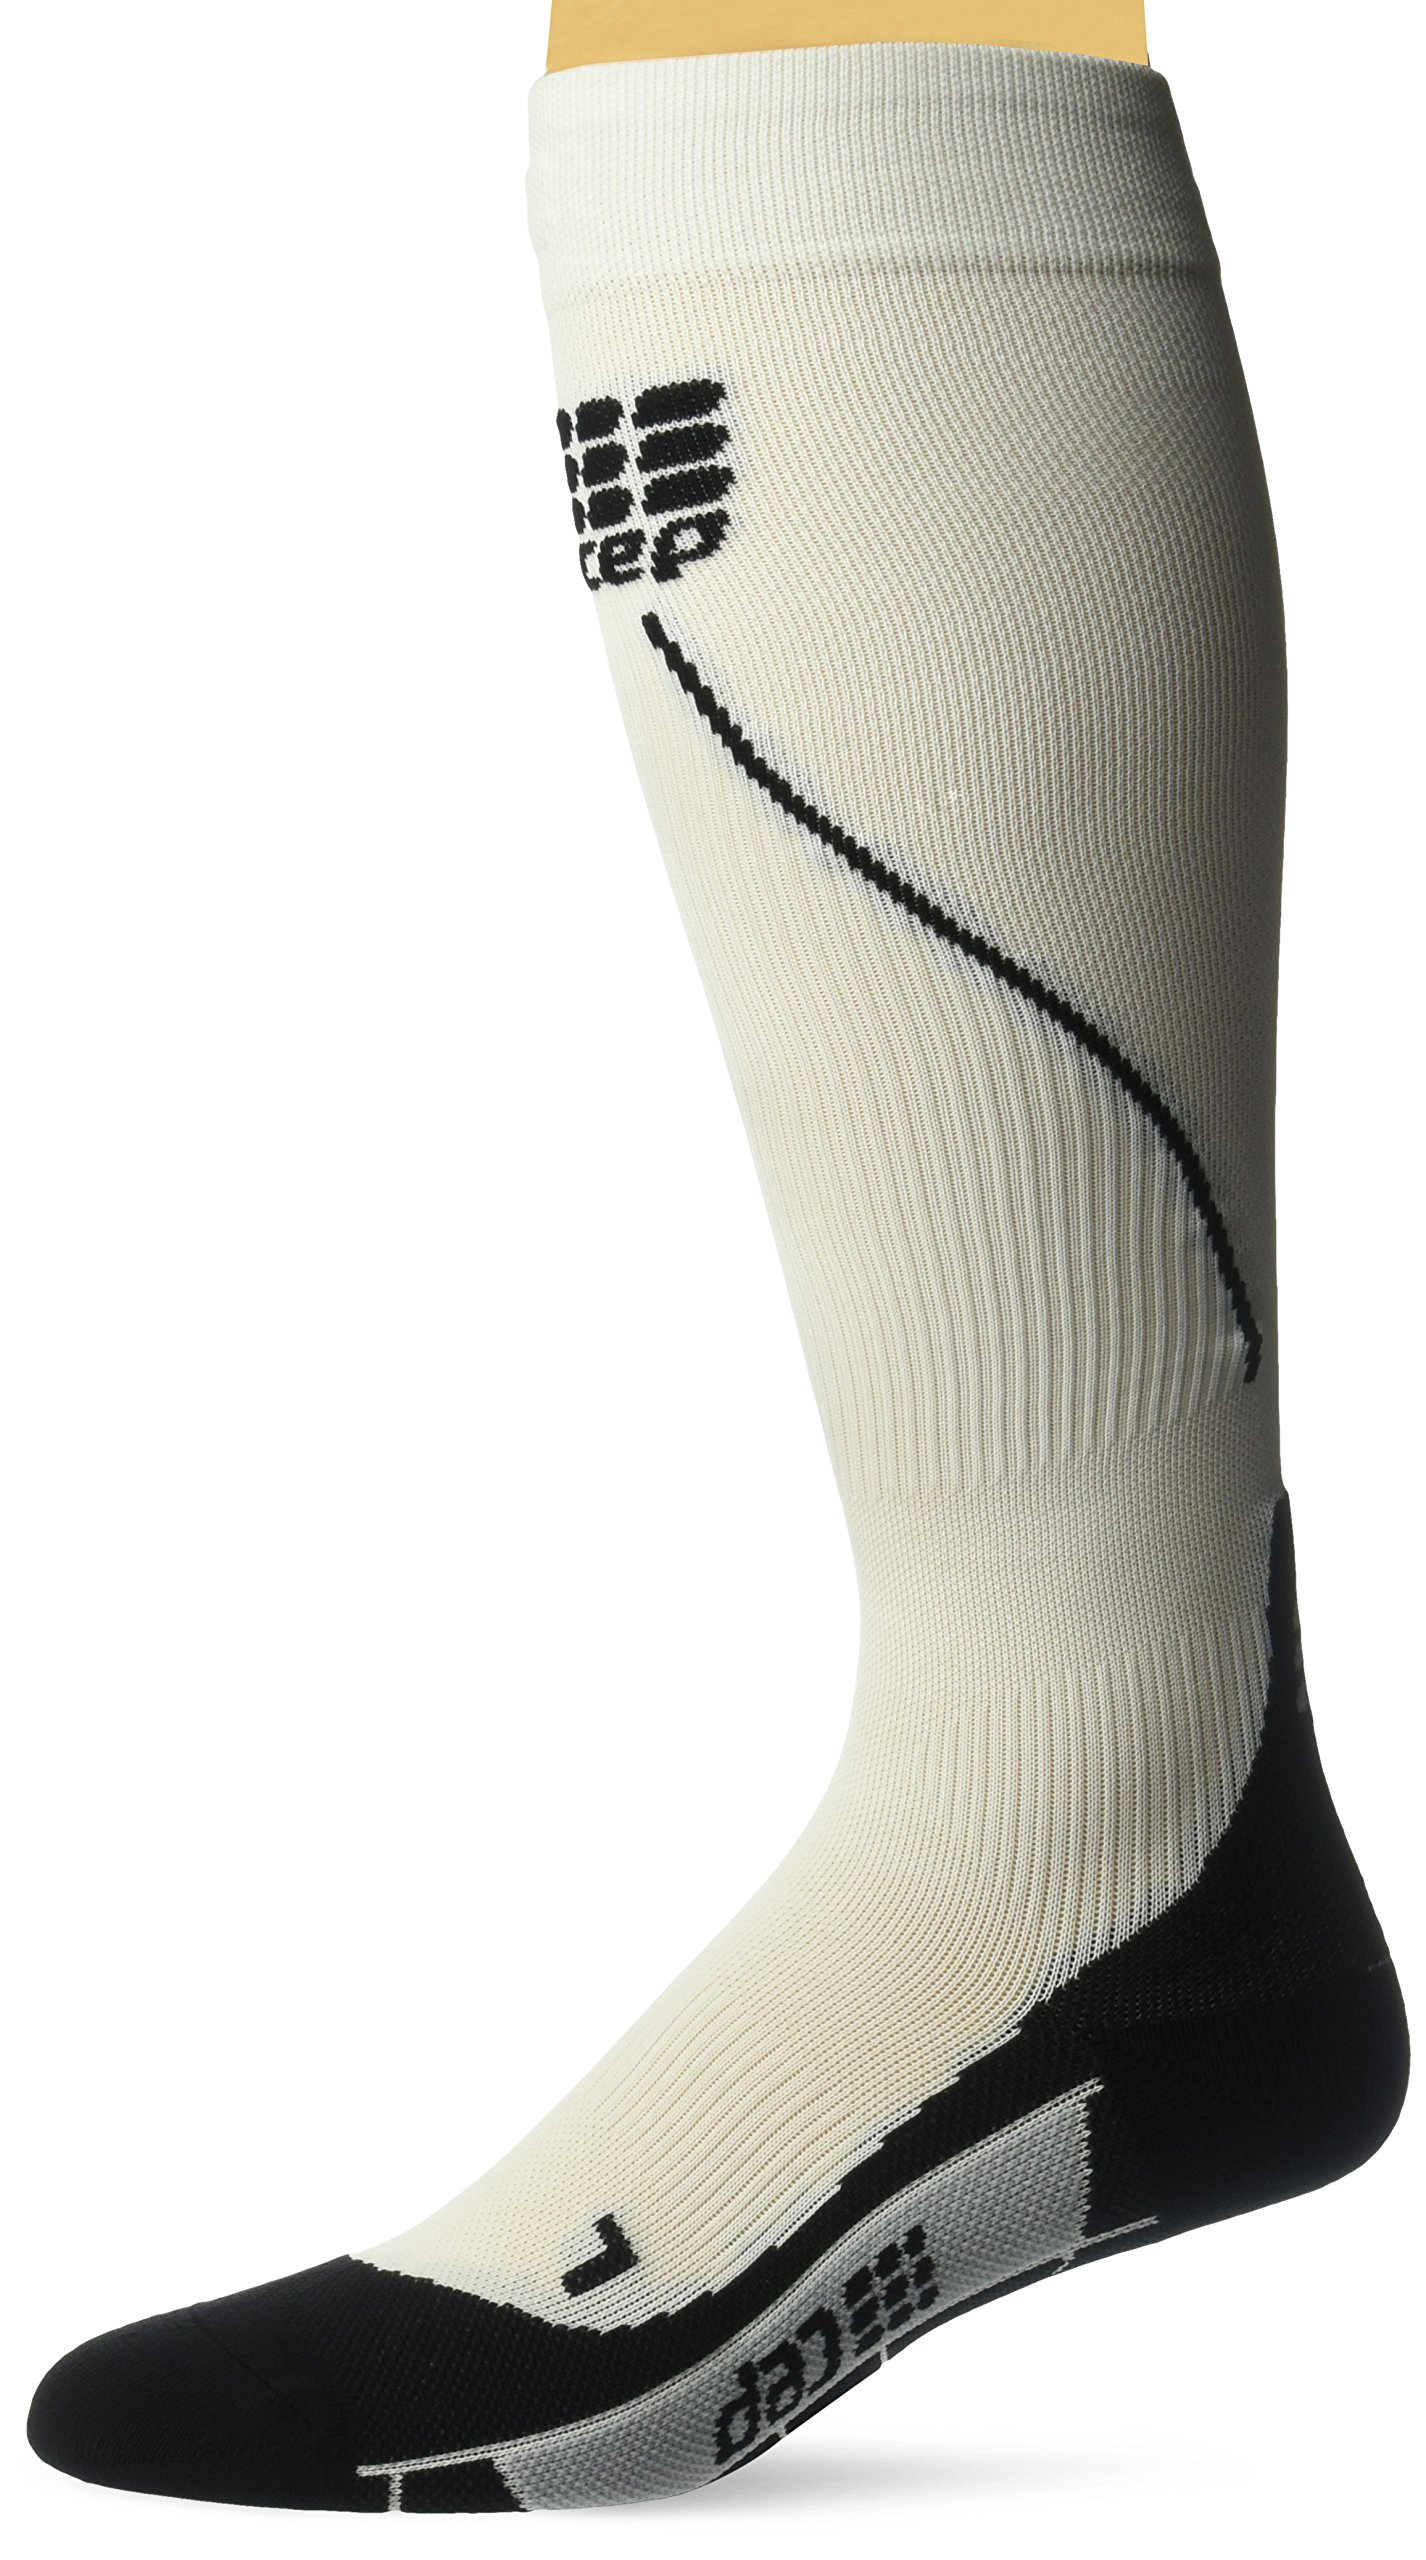 CEP Men's Progressive+ Compression Run Socks 2.0 for Running, Cross Training, Fitness, Calf Injuries, Shin Splits, Recovery, and Athletics, 20-30mmHg Compression, White/Black, Size 3 by CEP